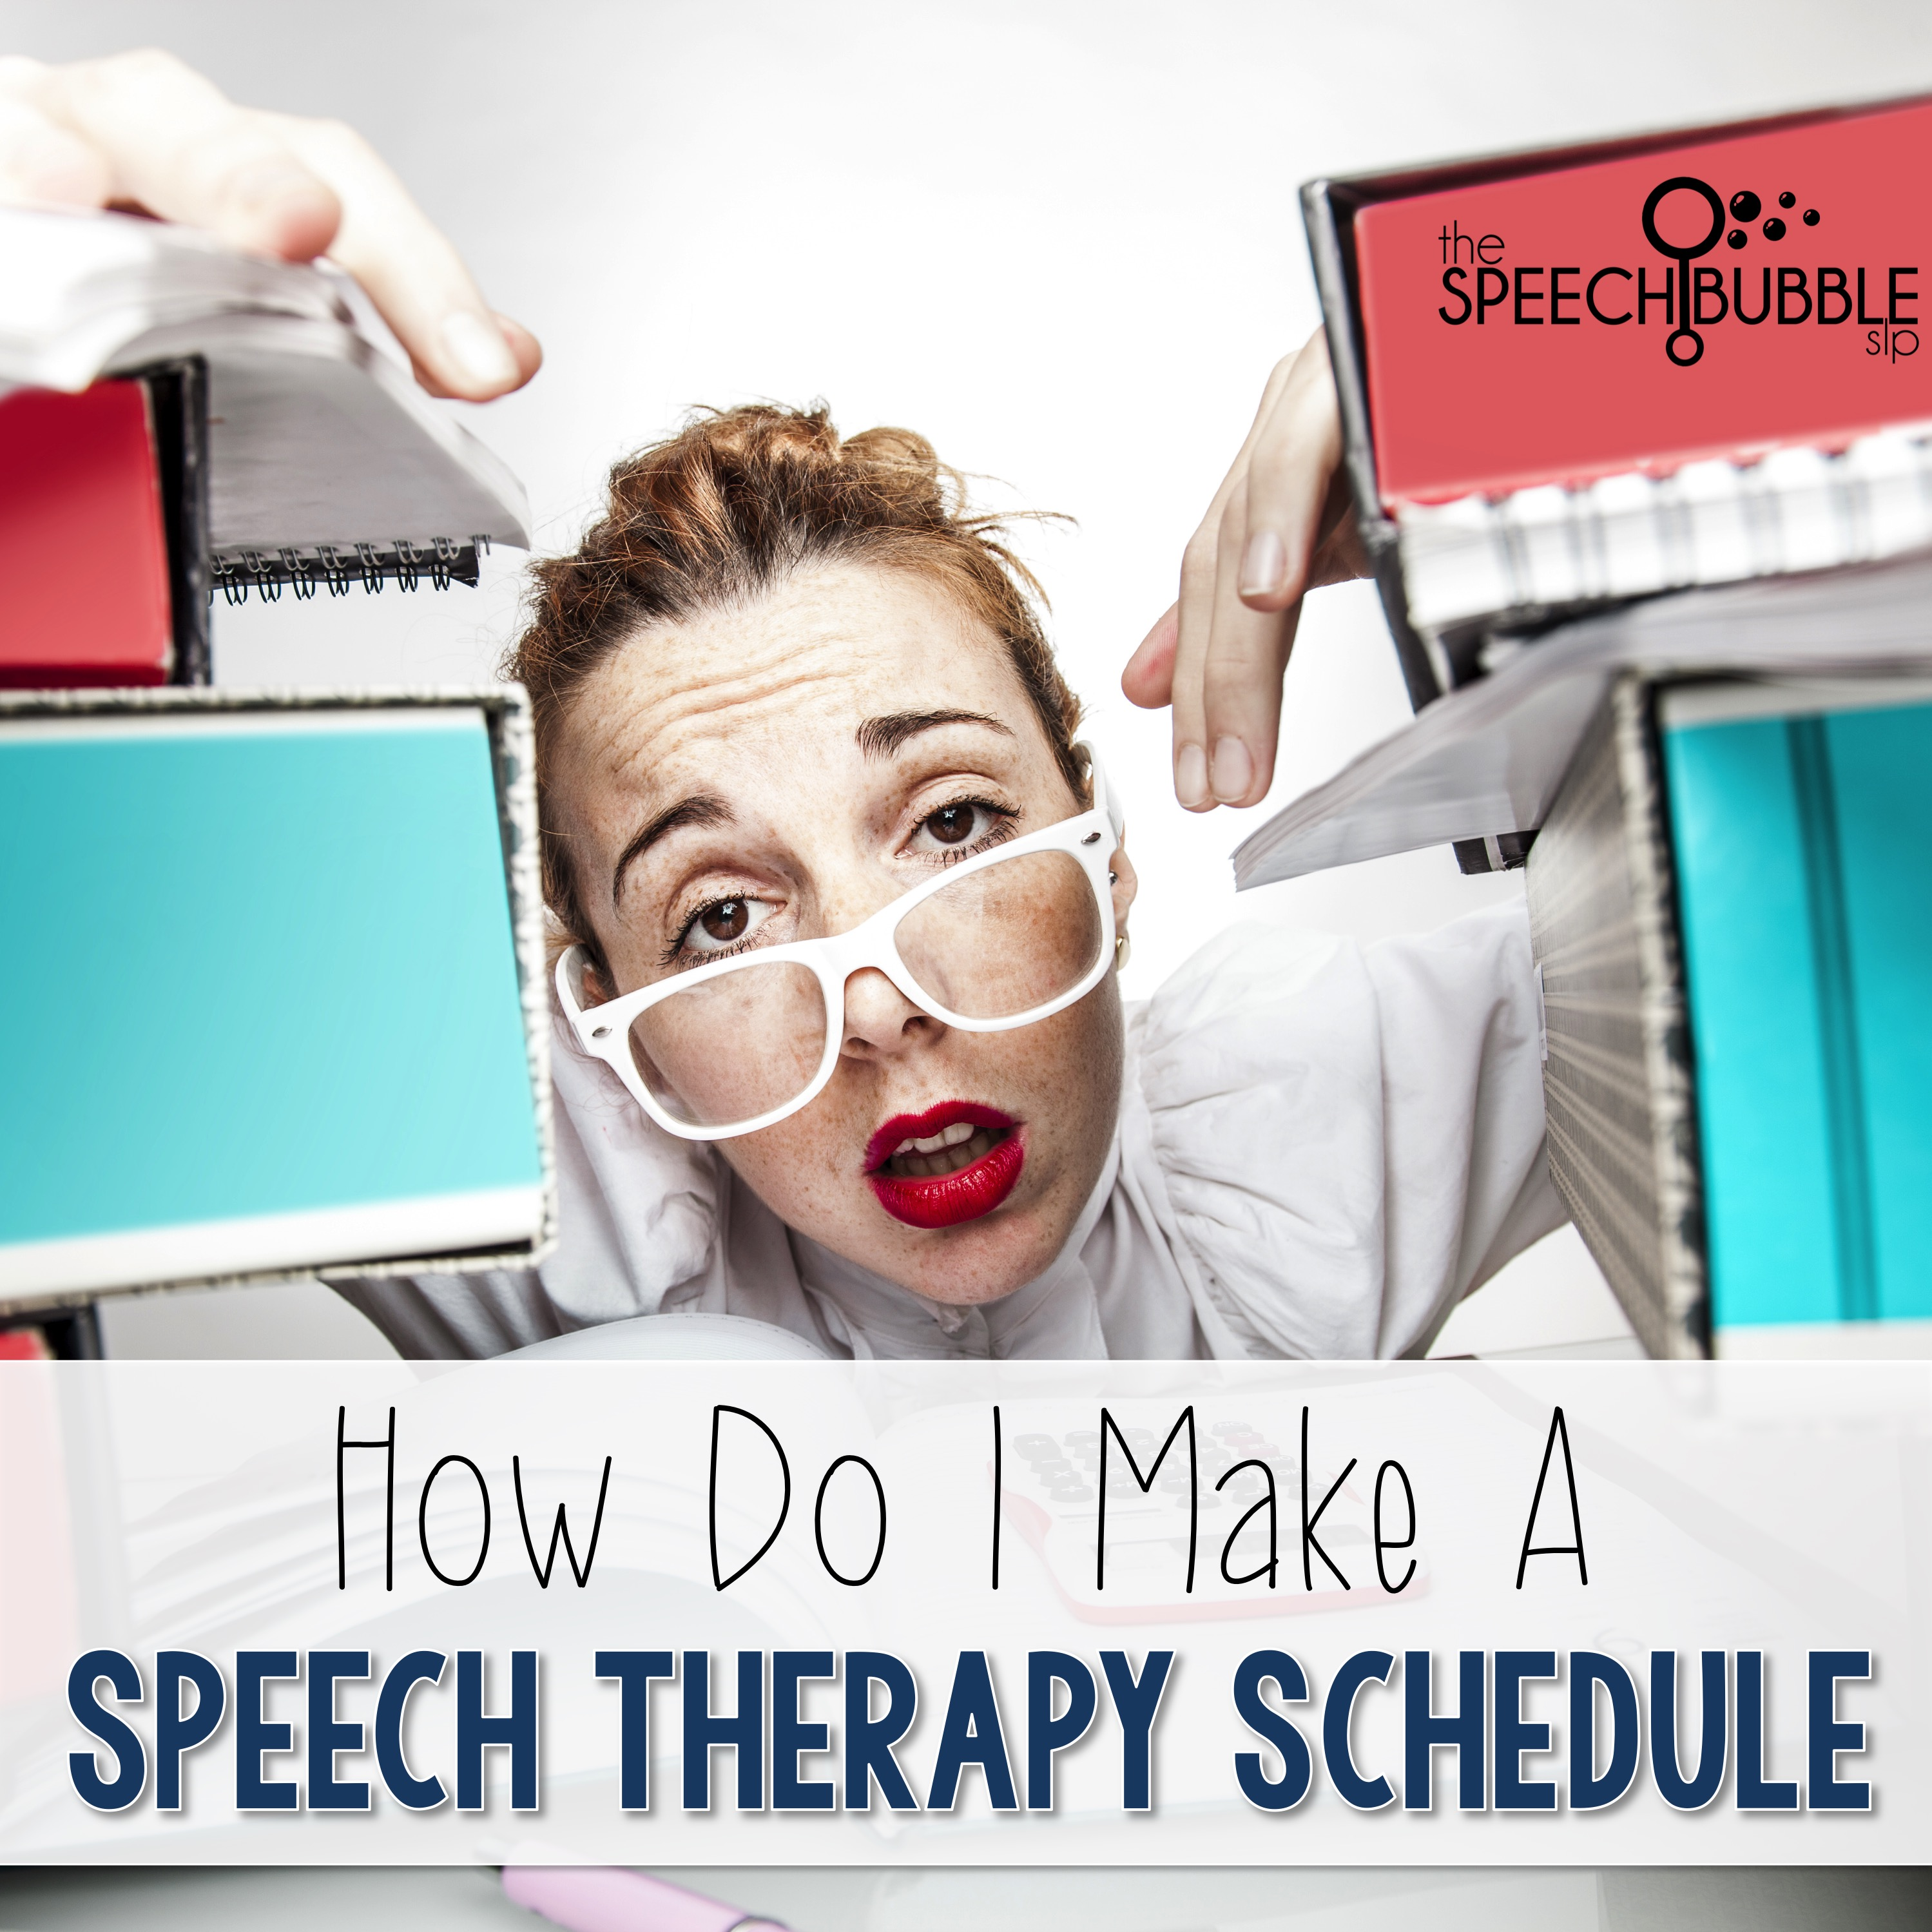 How Do I Make A Speech Therapy Schedule?